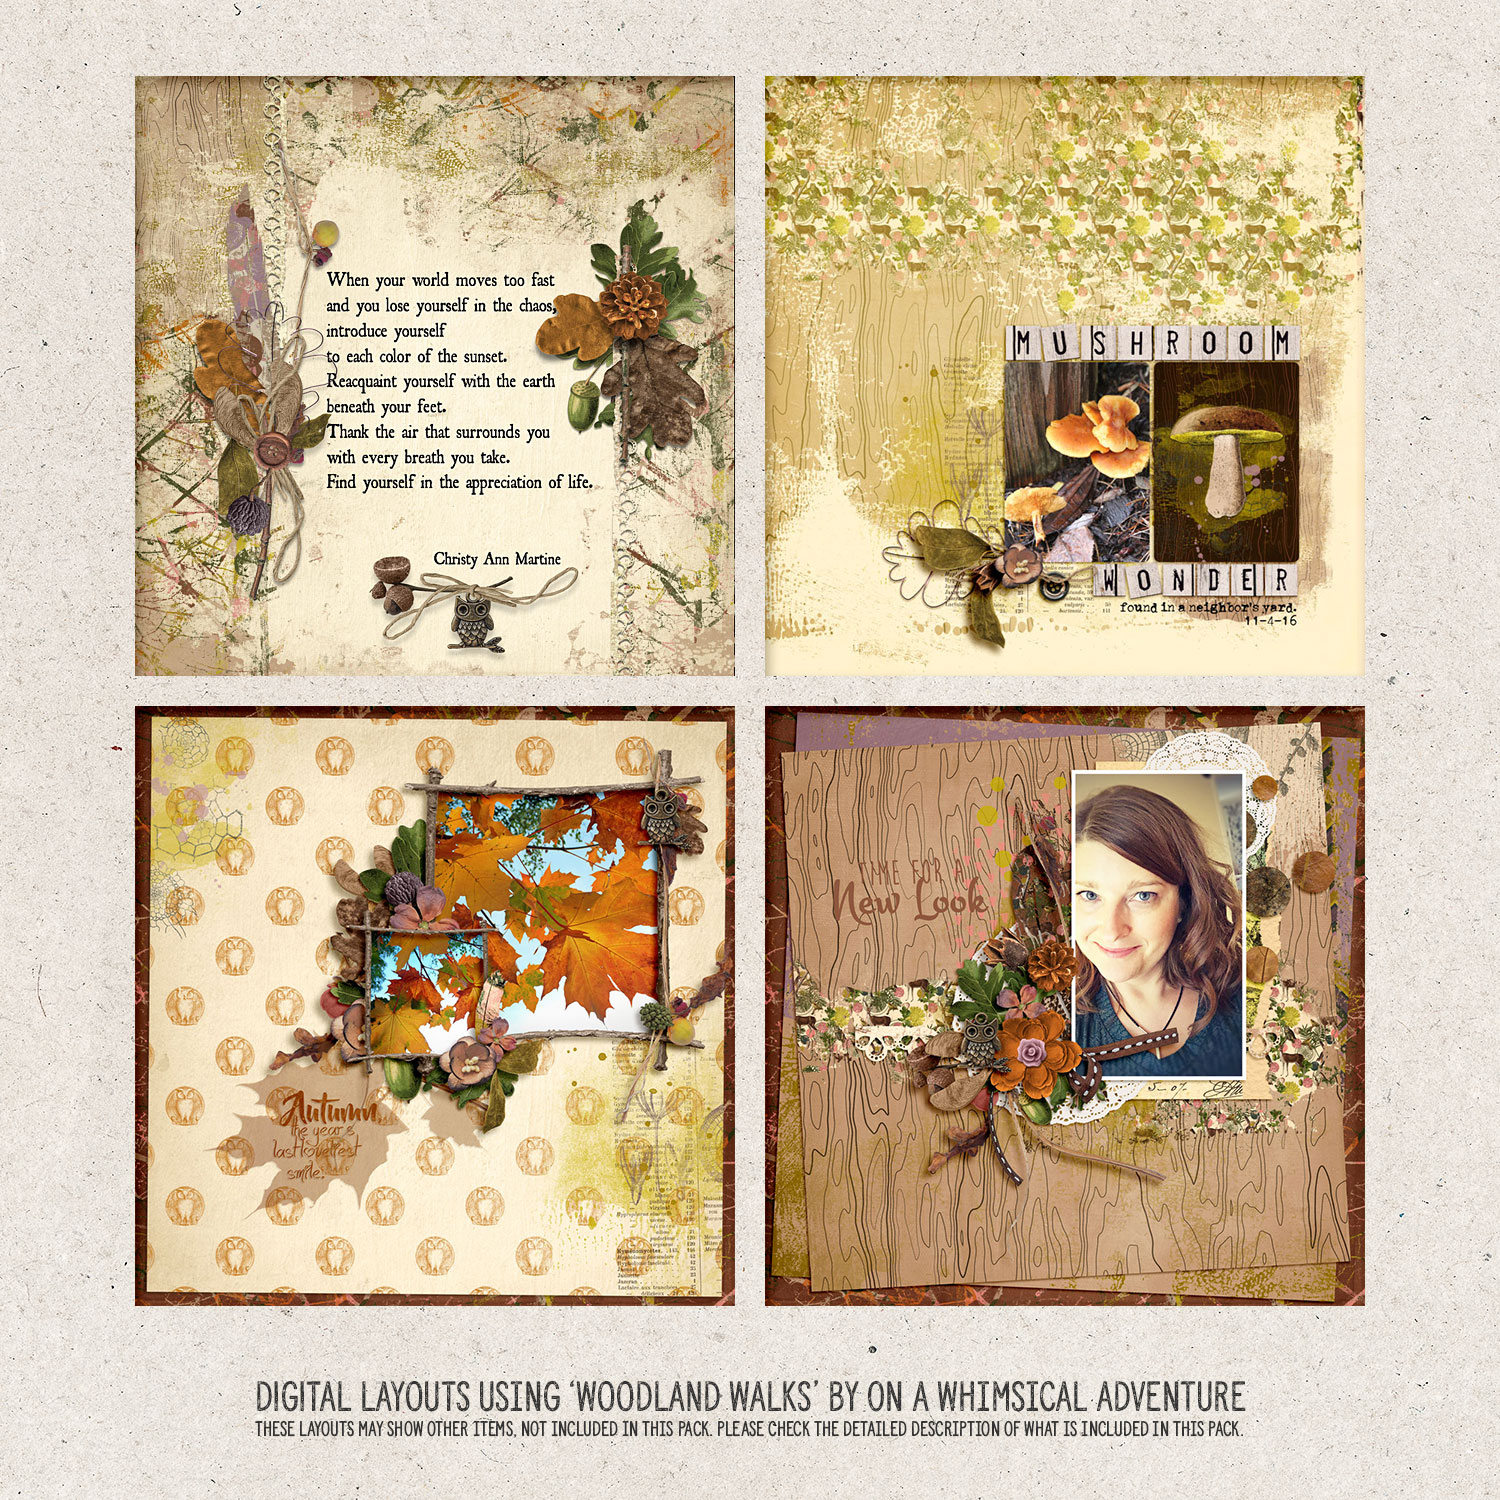 digital layouts using 'Woodland Walks' by On A Whimsical Adventure